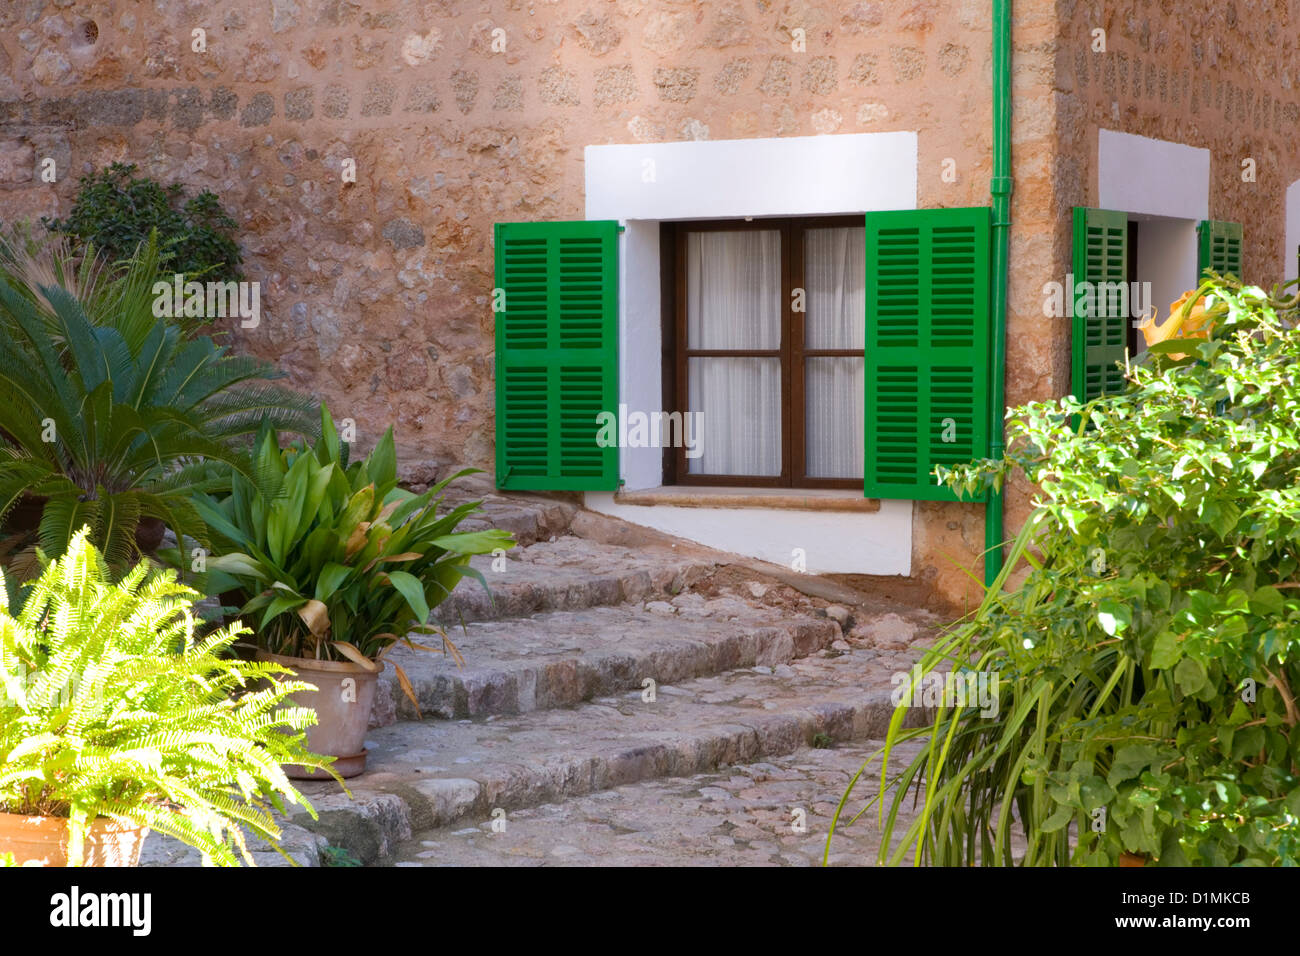 Fornalutx, Mallorca, Balearic Islands, Spain. Green-shuttered window in the heart of the village. Stock Photo